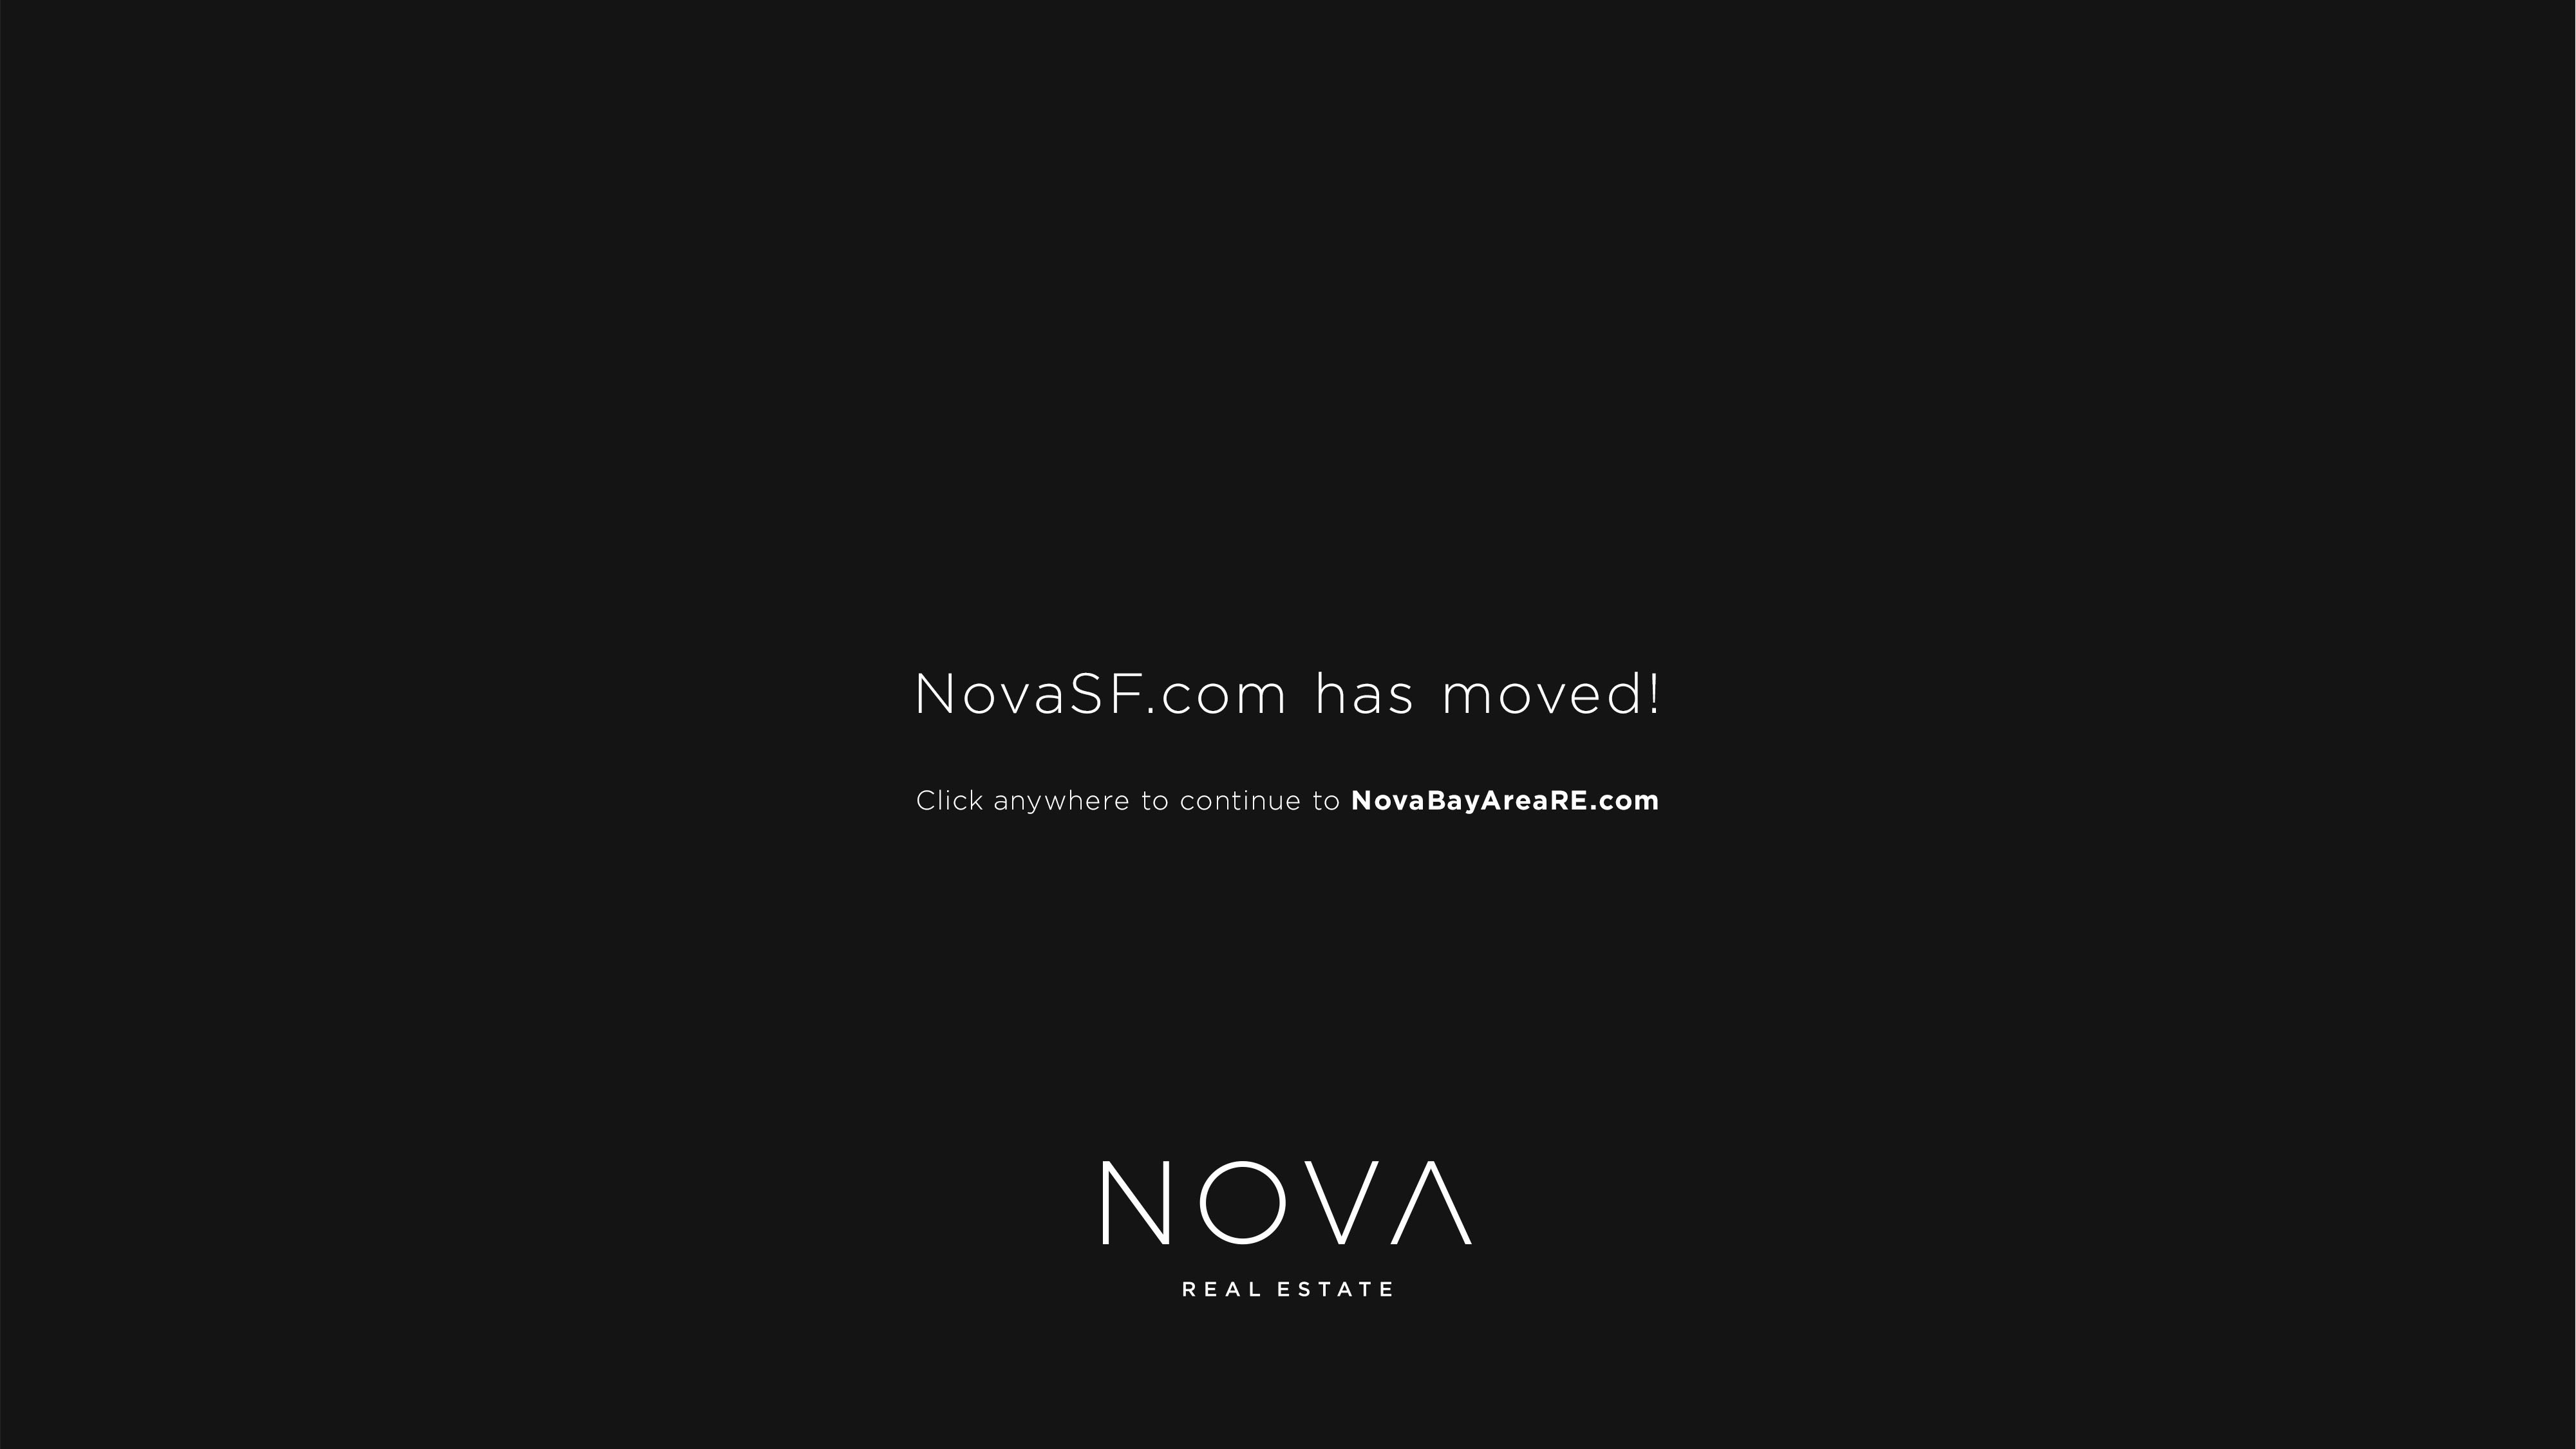 NovaSF.com has moved!